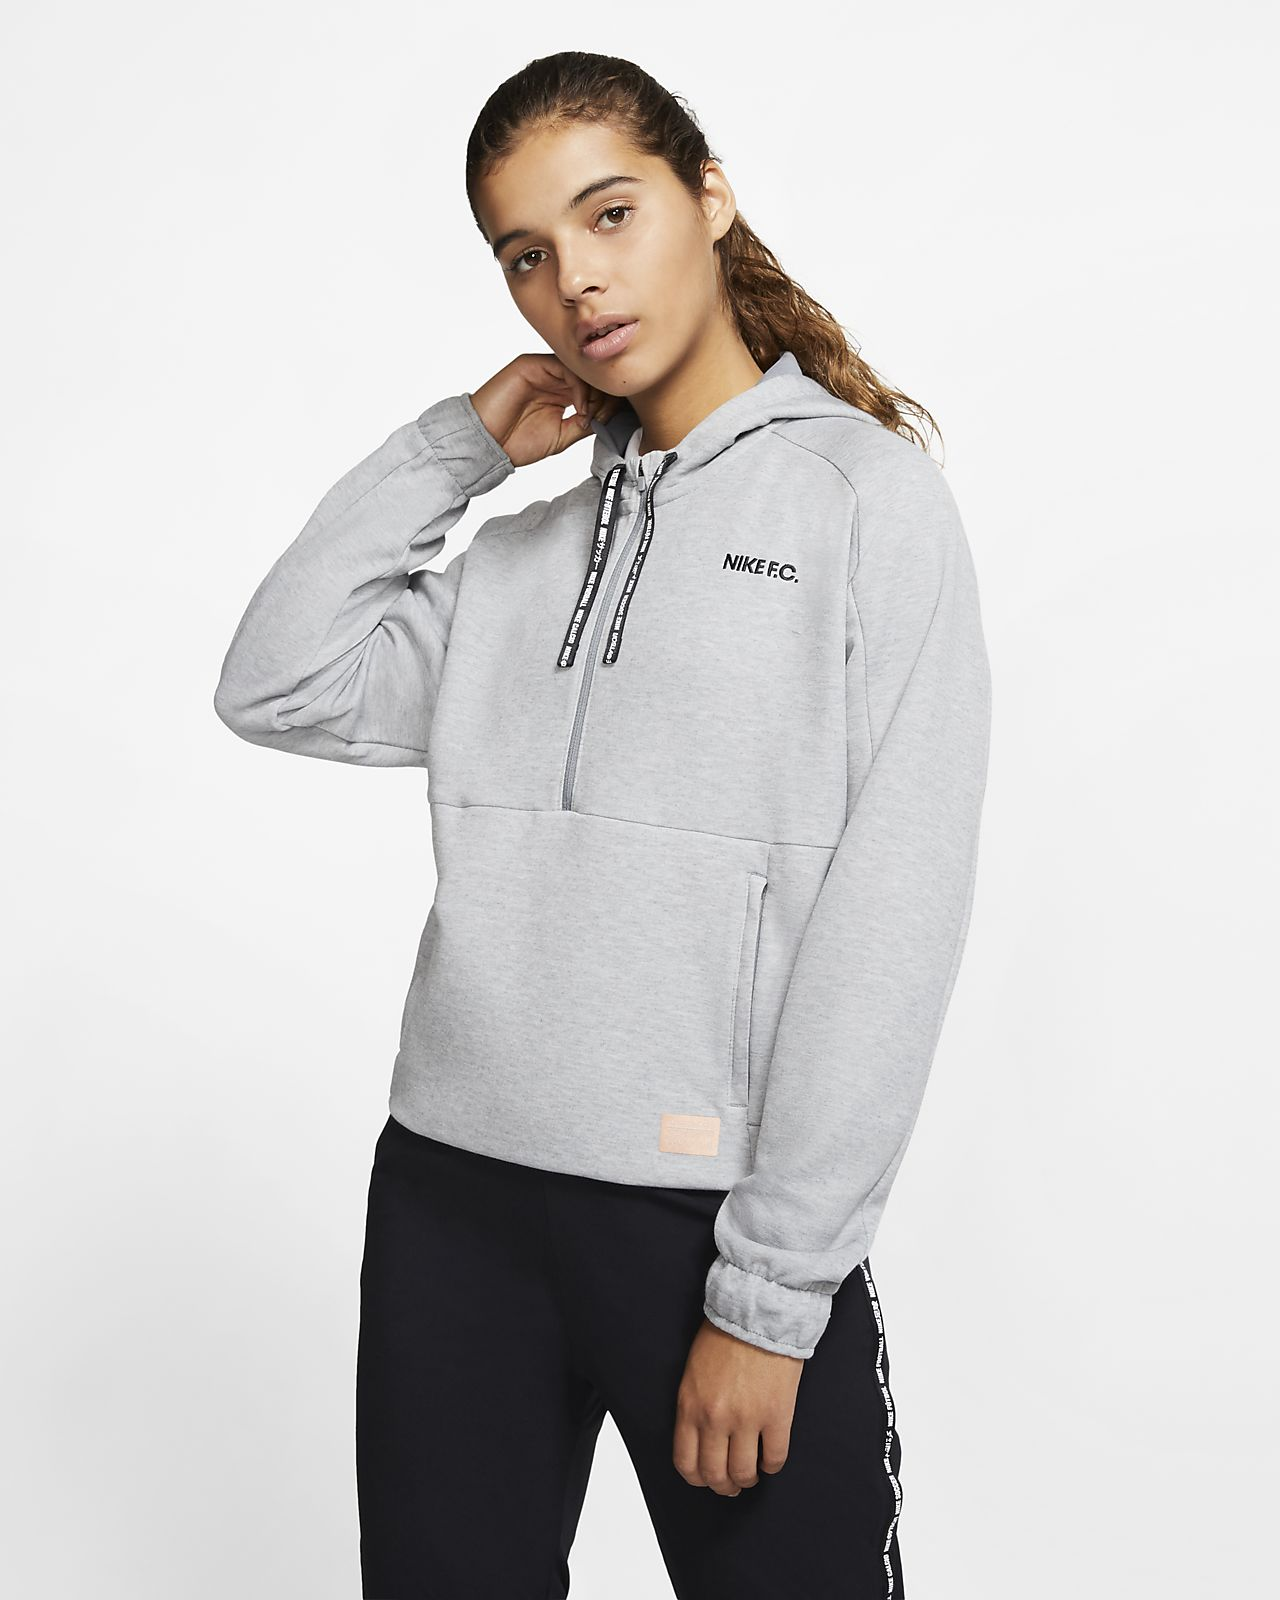 Nike F.C. Dri-FIT Women's 1/2-Zip Football Hoodie